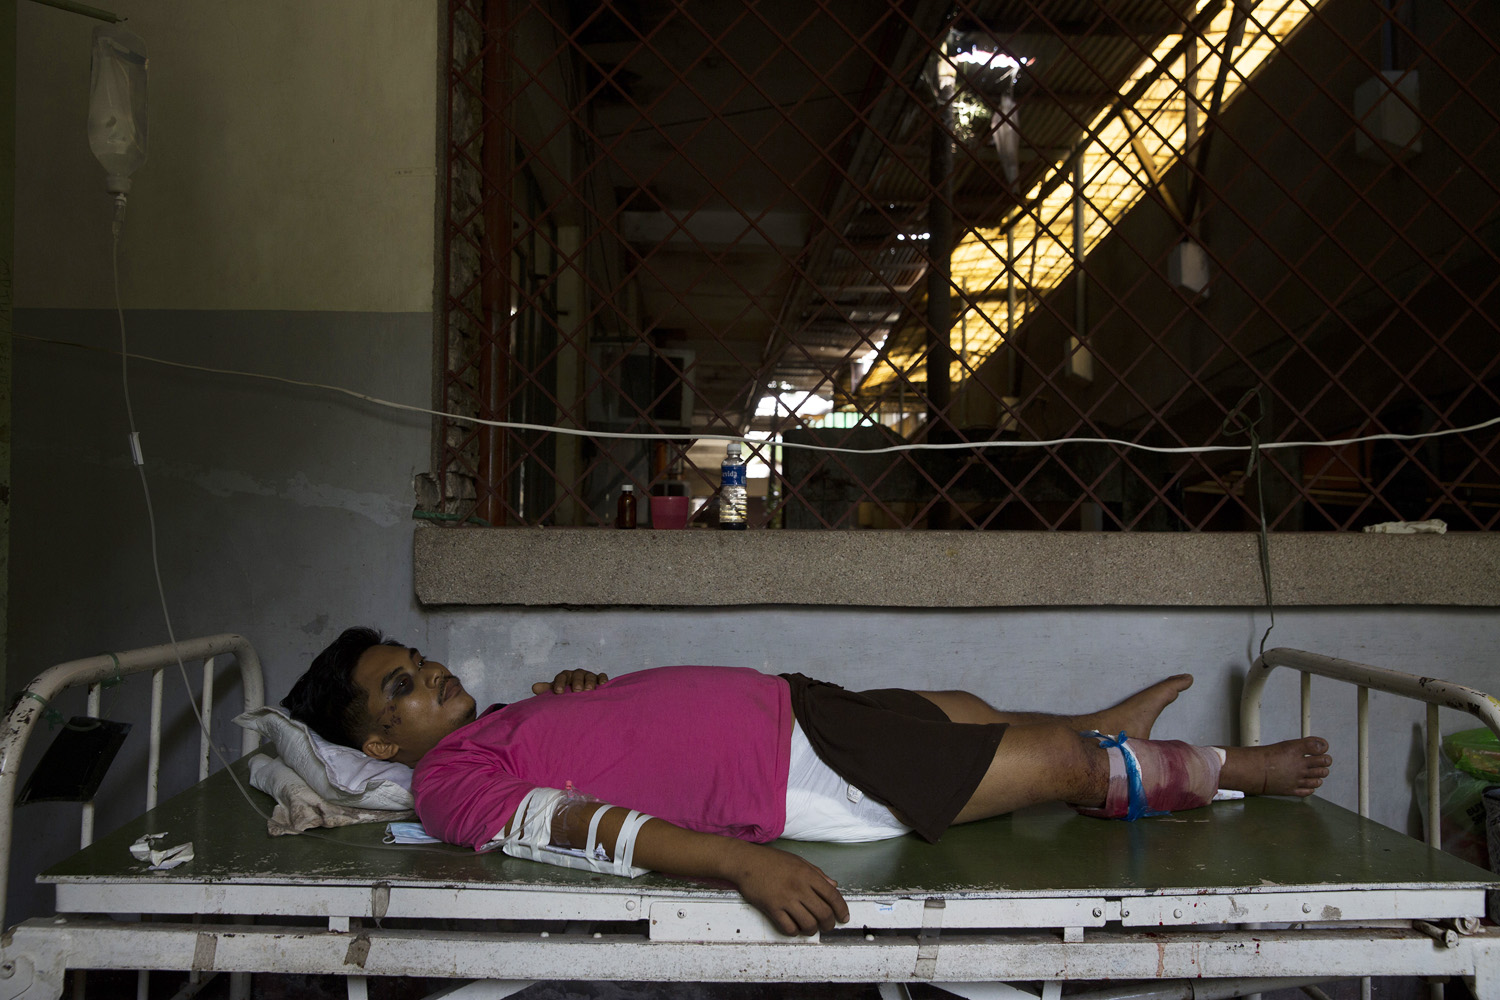 Richard Pulga lies in a hospital in Tacloban, Nov. 13, 2013. Two days later, he died of his wounds after not receiving proper medical attention.